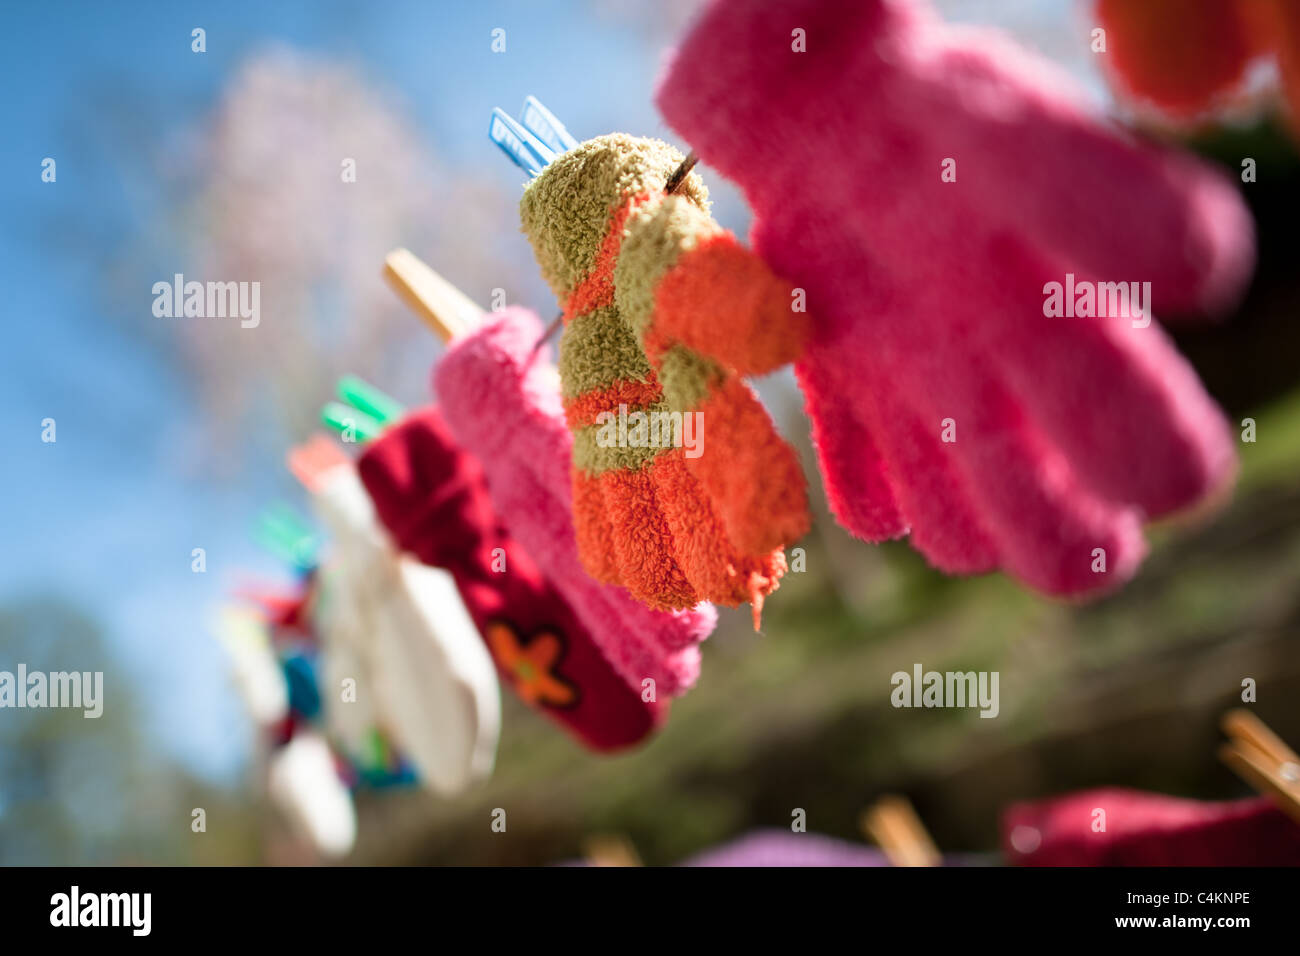 Colorful kid gloves hanging on a clothes line in the backyard of an apartment house, Czech Republic. - Stock Image